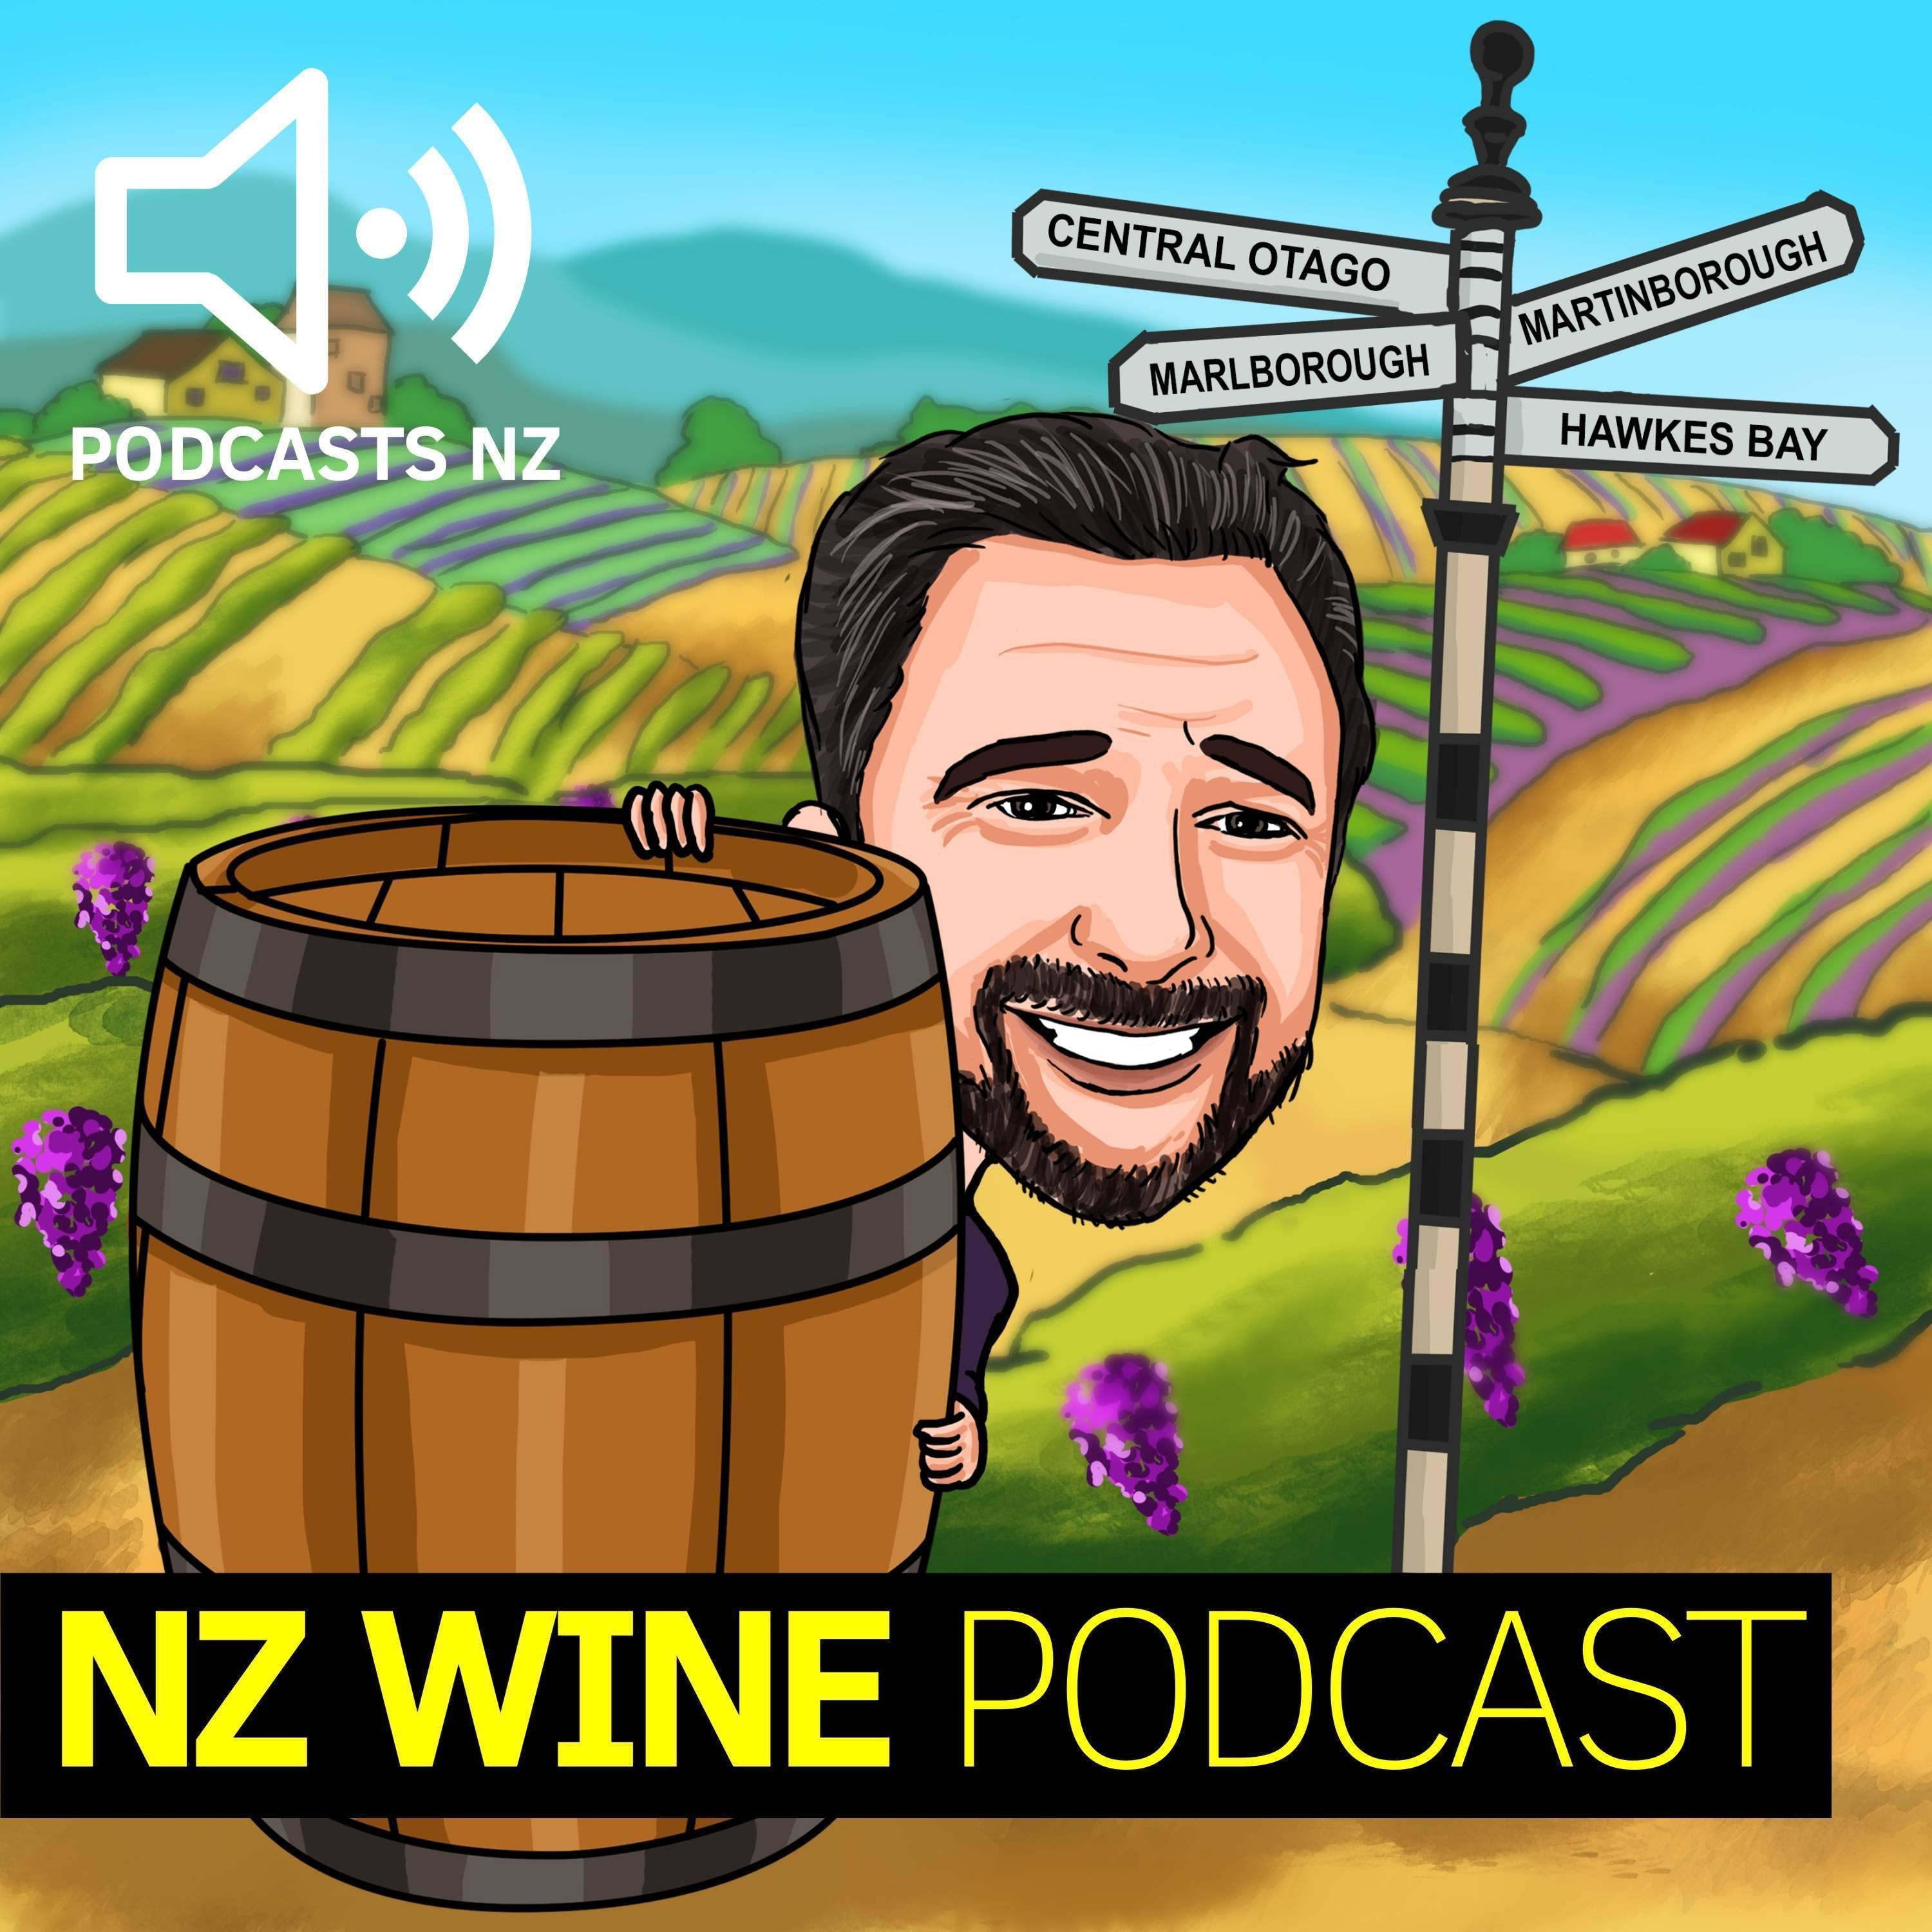 NZ Wine Podcast 38: Rhone Part 1